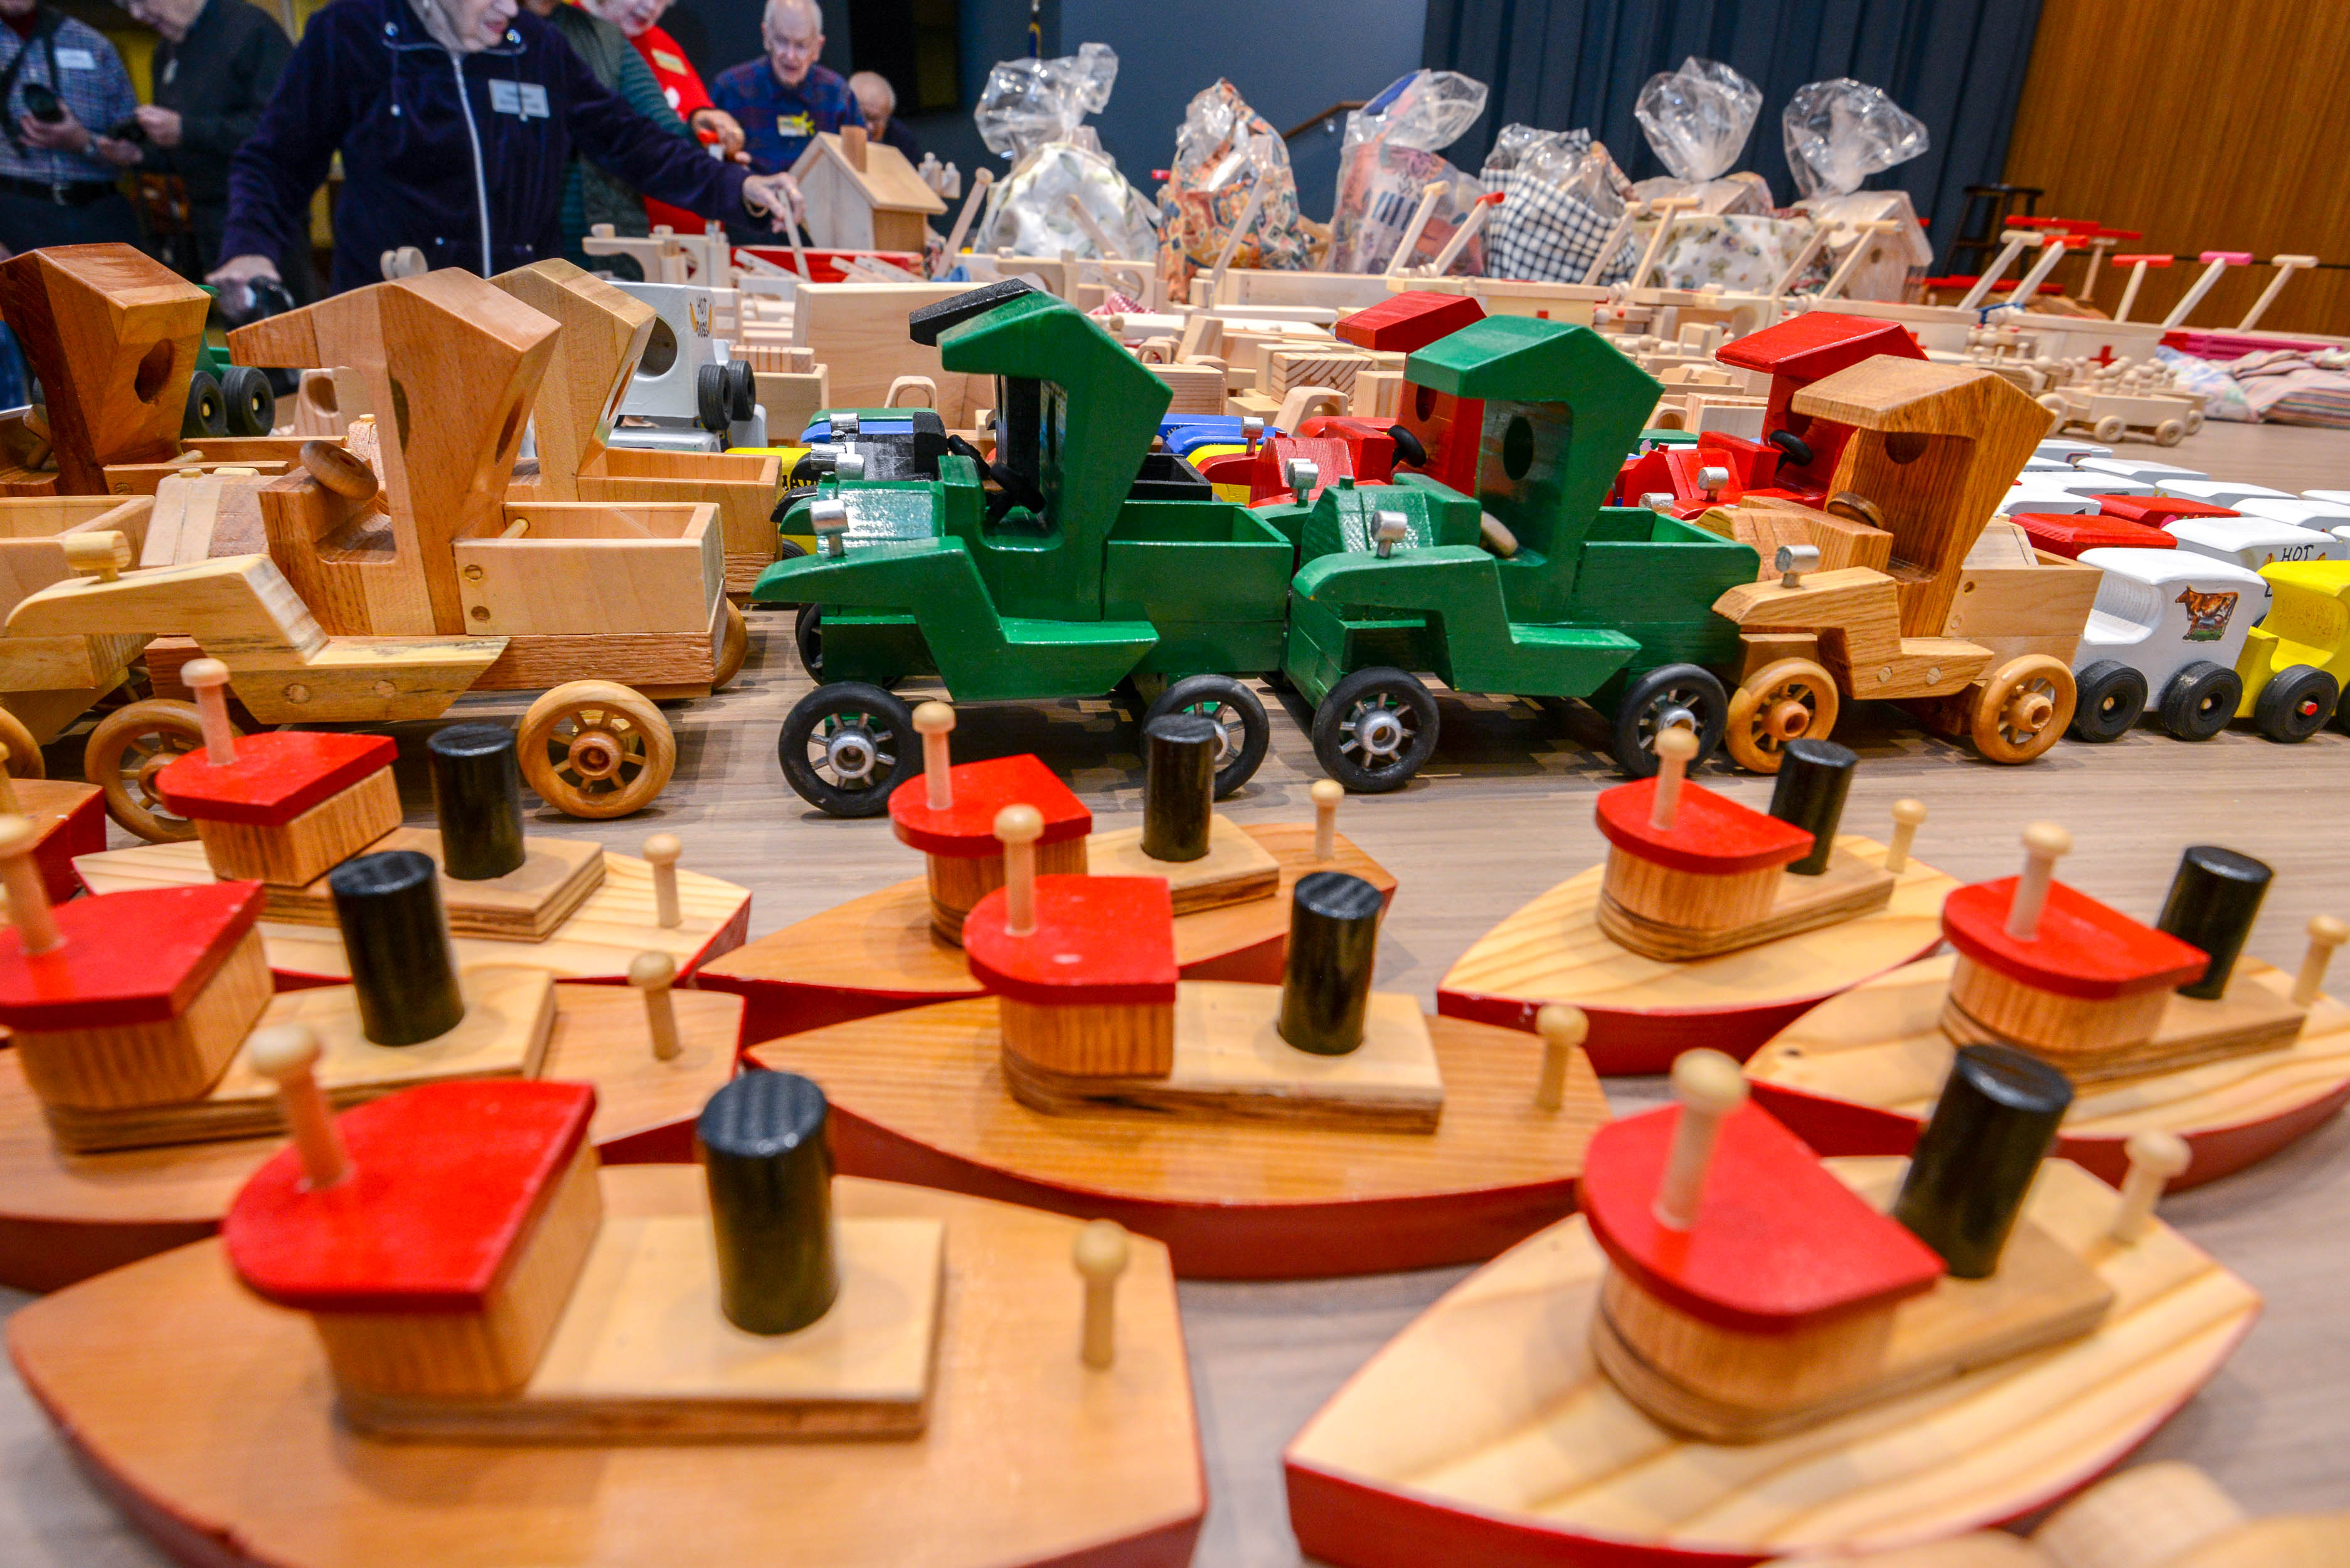 granting a child's wish – one wooden toy at a time - emerald